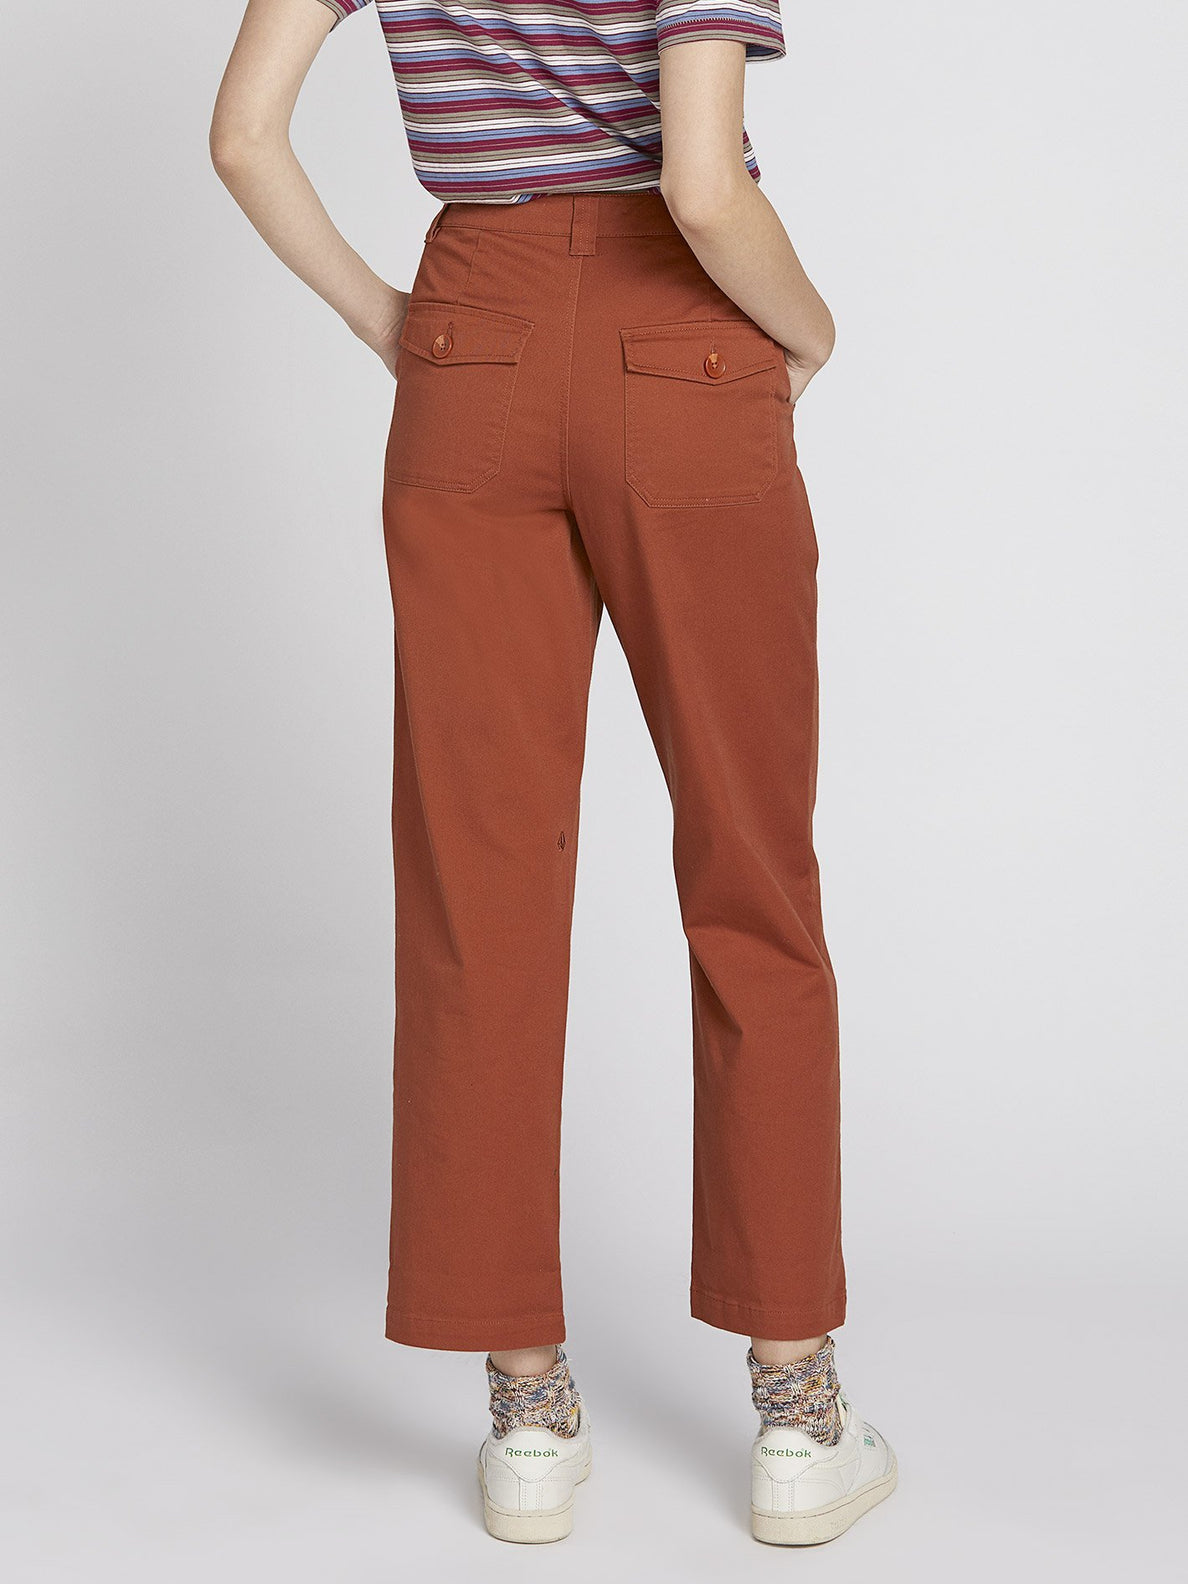 Frochickie Carpenter Pant - Rust (B1131903_RST) [B]